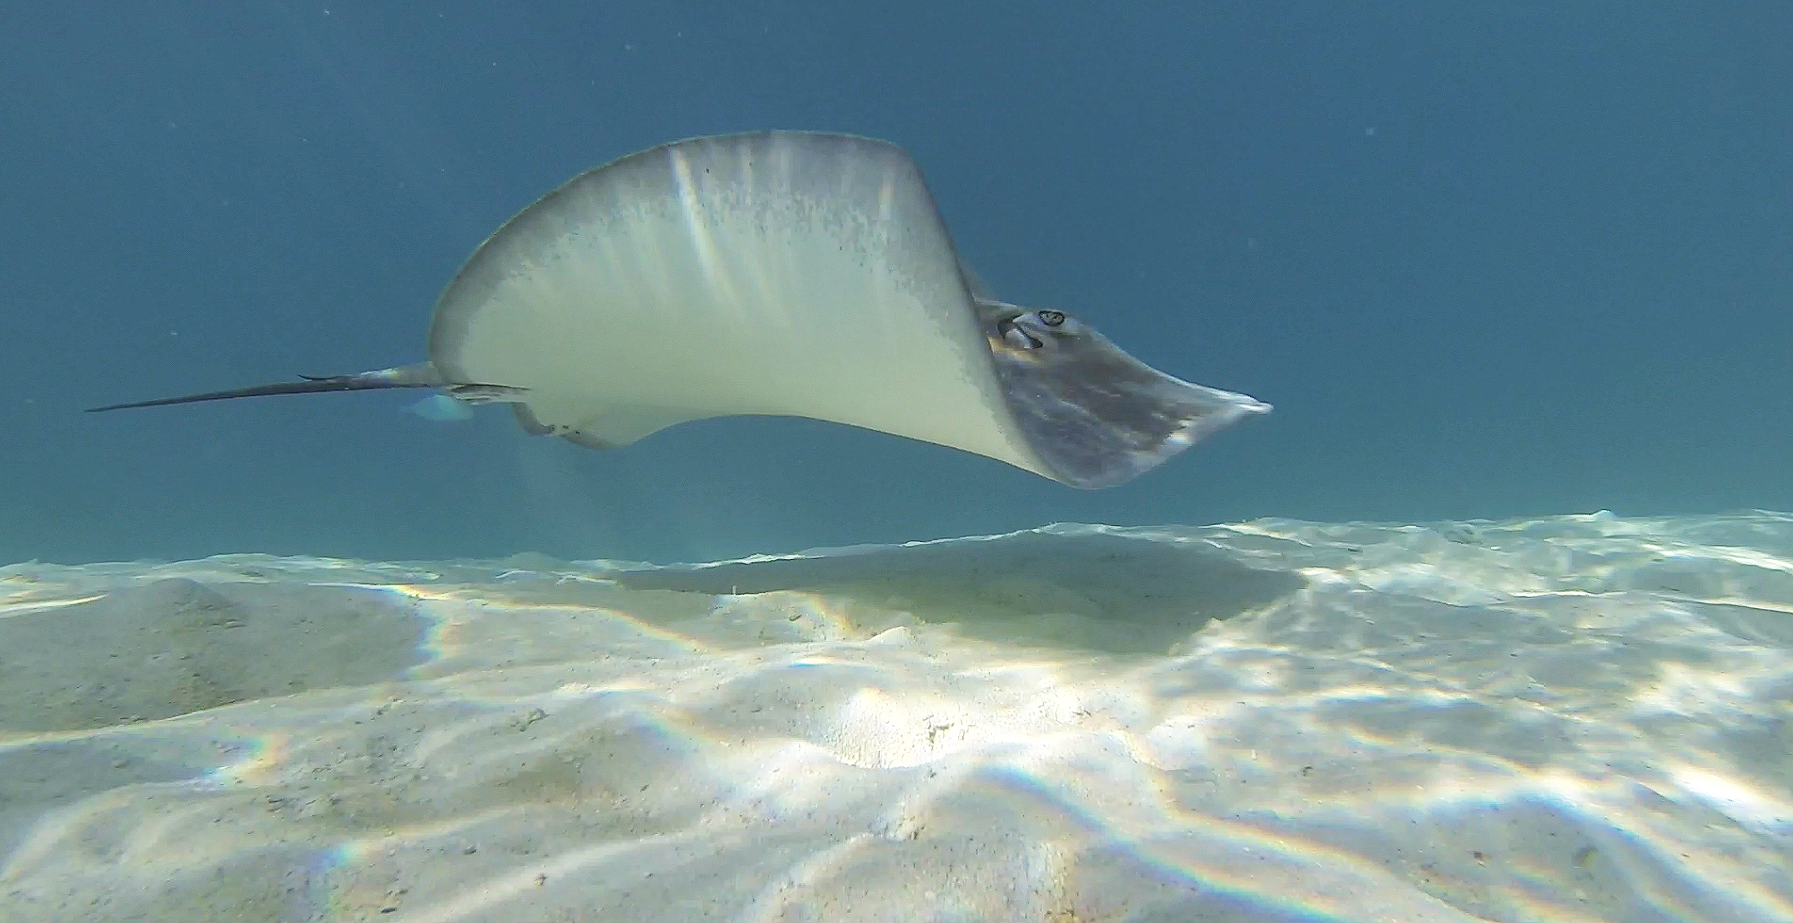 moorea-tahiti-treasure-sting-ray